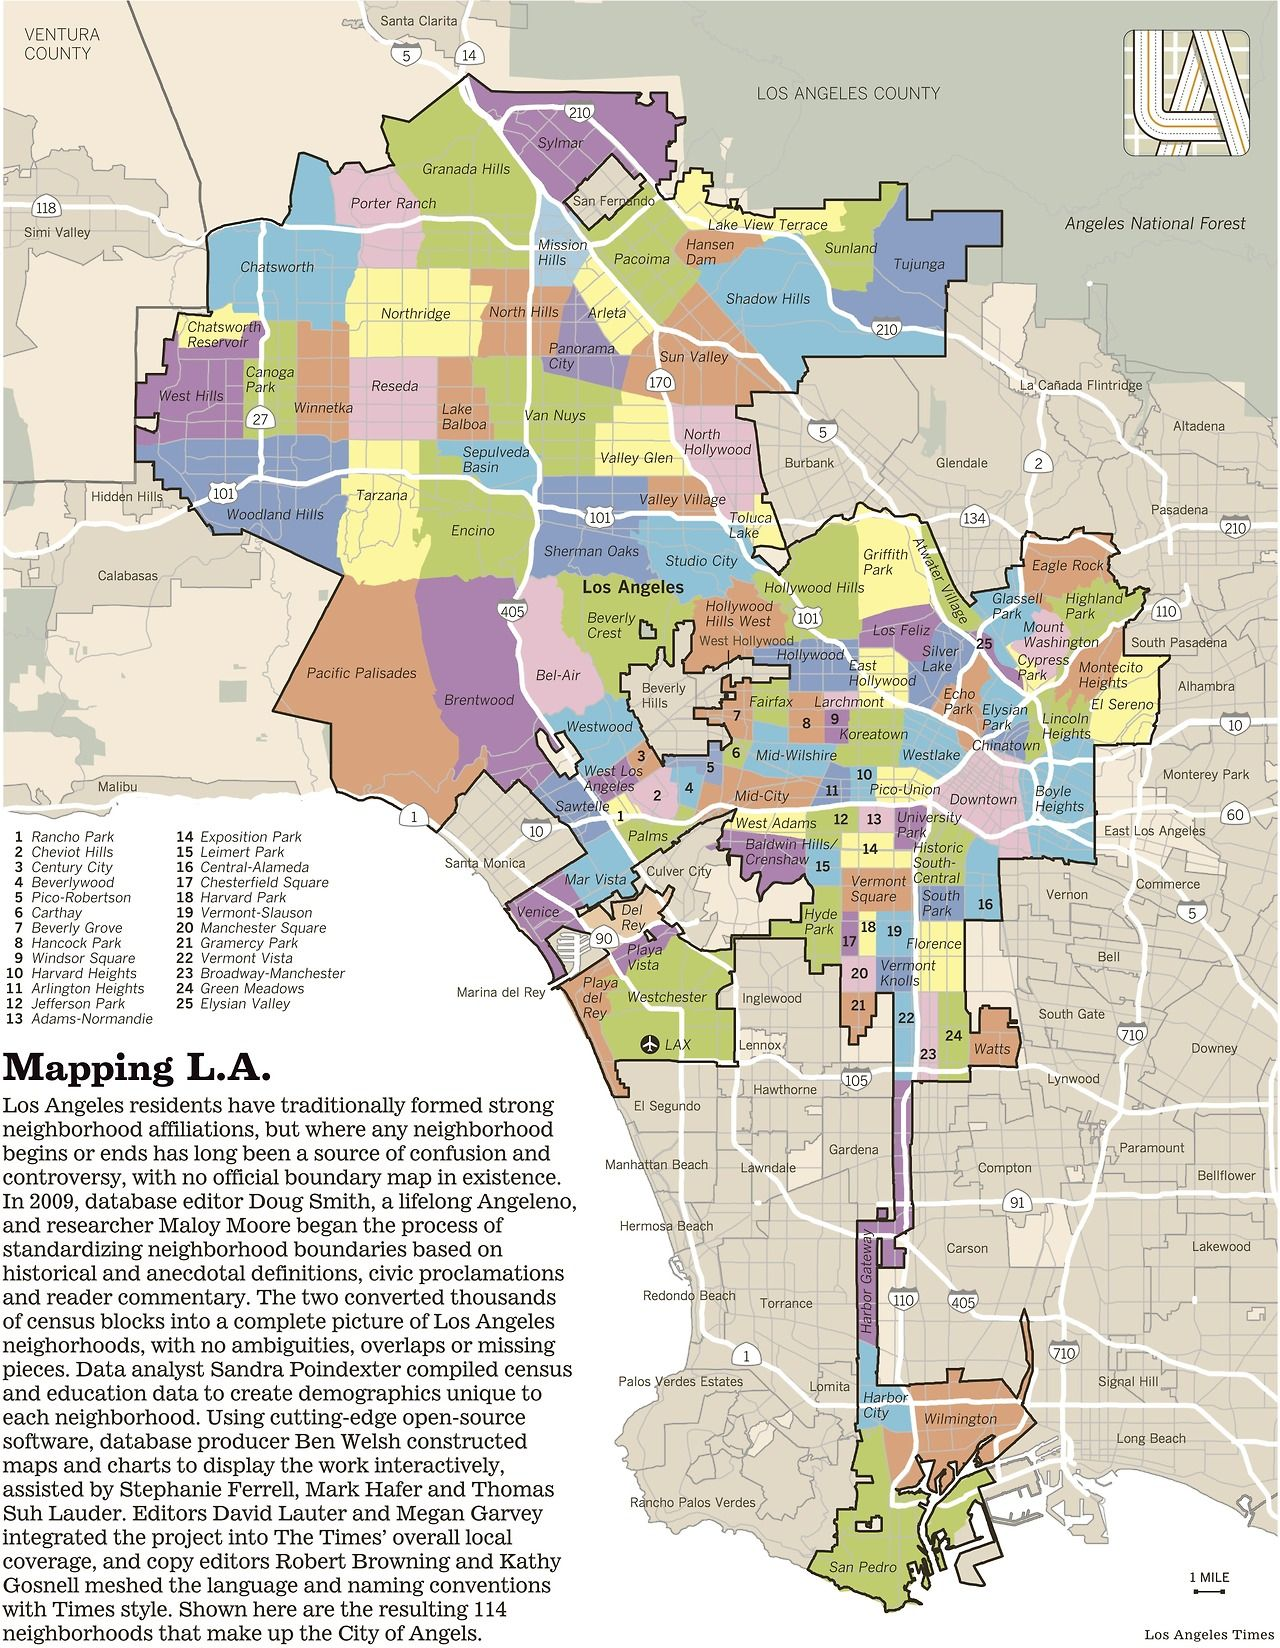 Los Angeles Suburbs Map maptitude1: This map shows the many neighborhoods of the sprawling